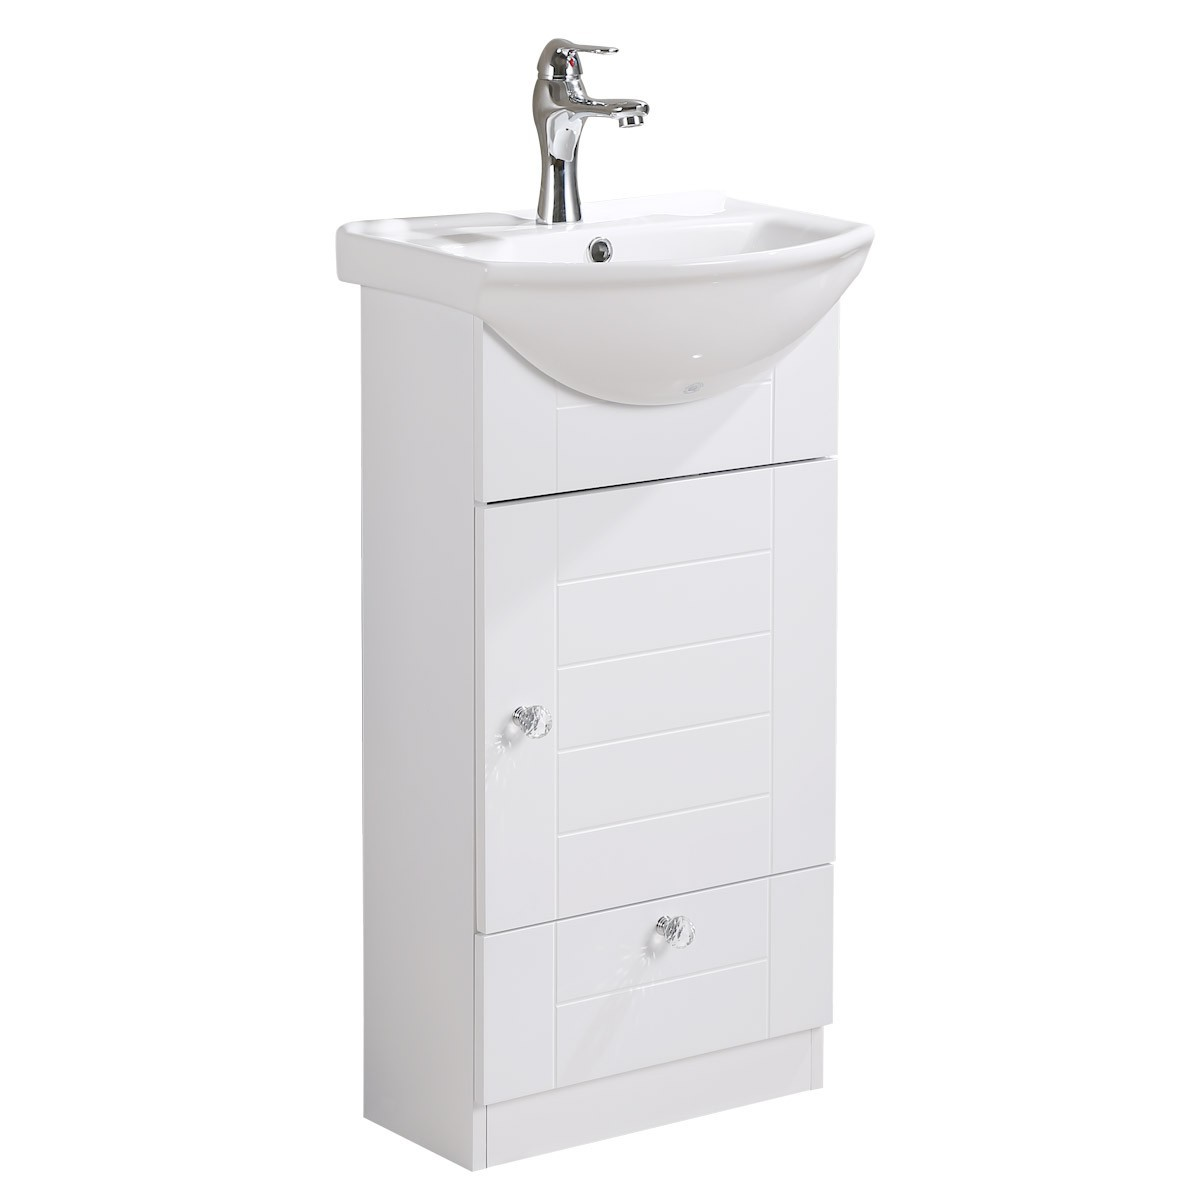 small wall mounted cabinet vanity bathroom sink with faucet easy assemble